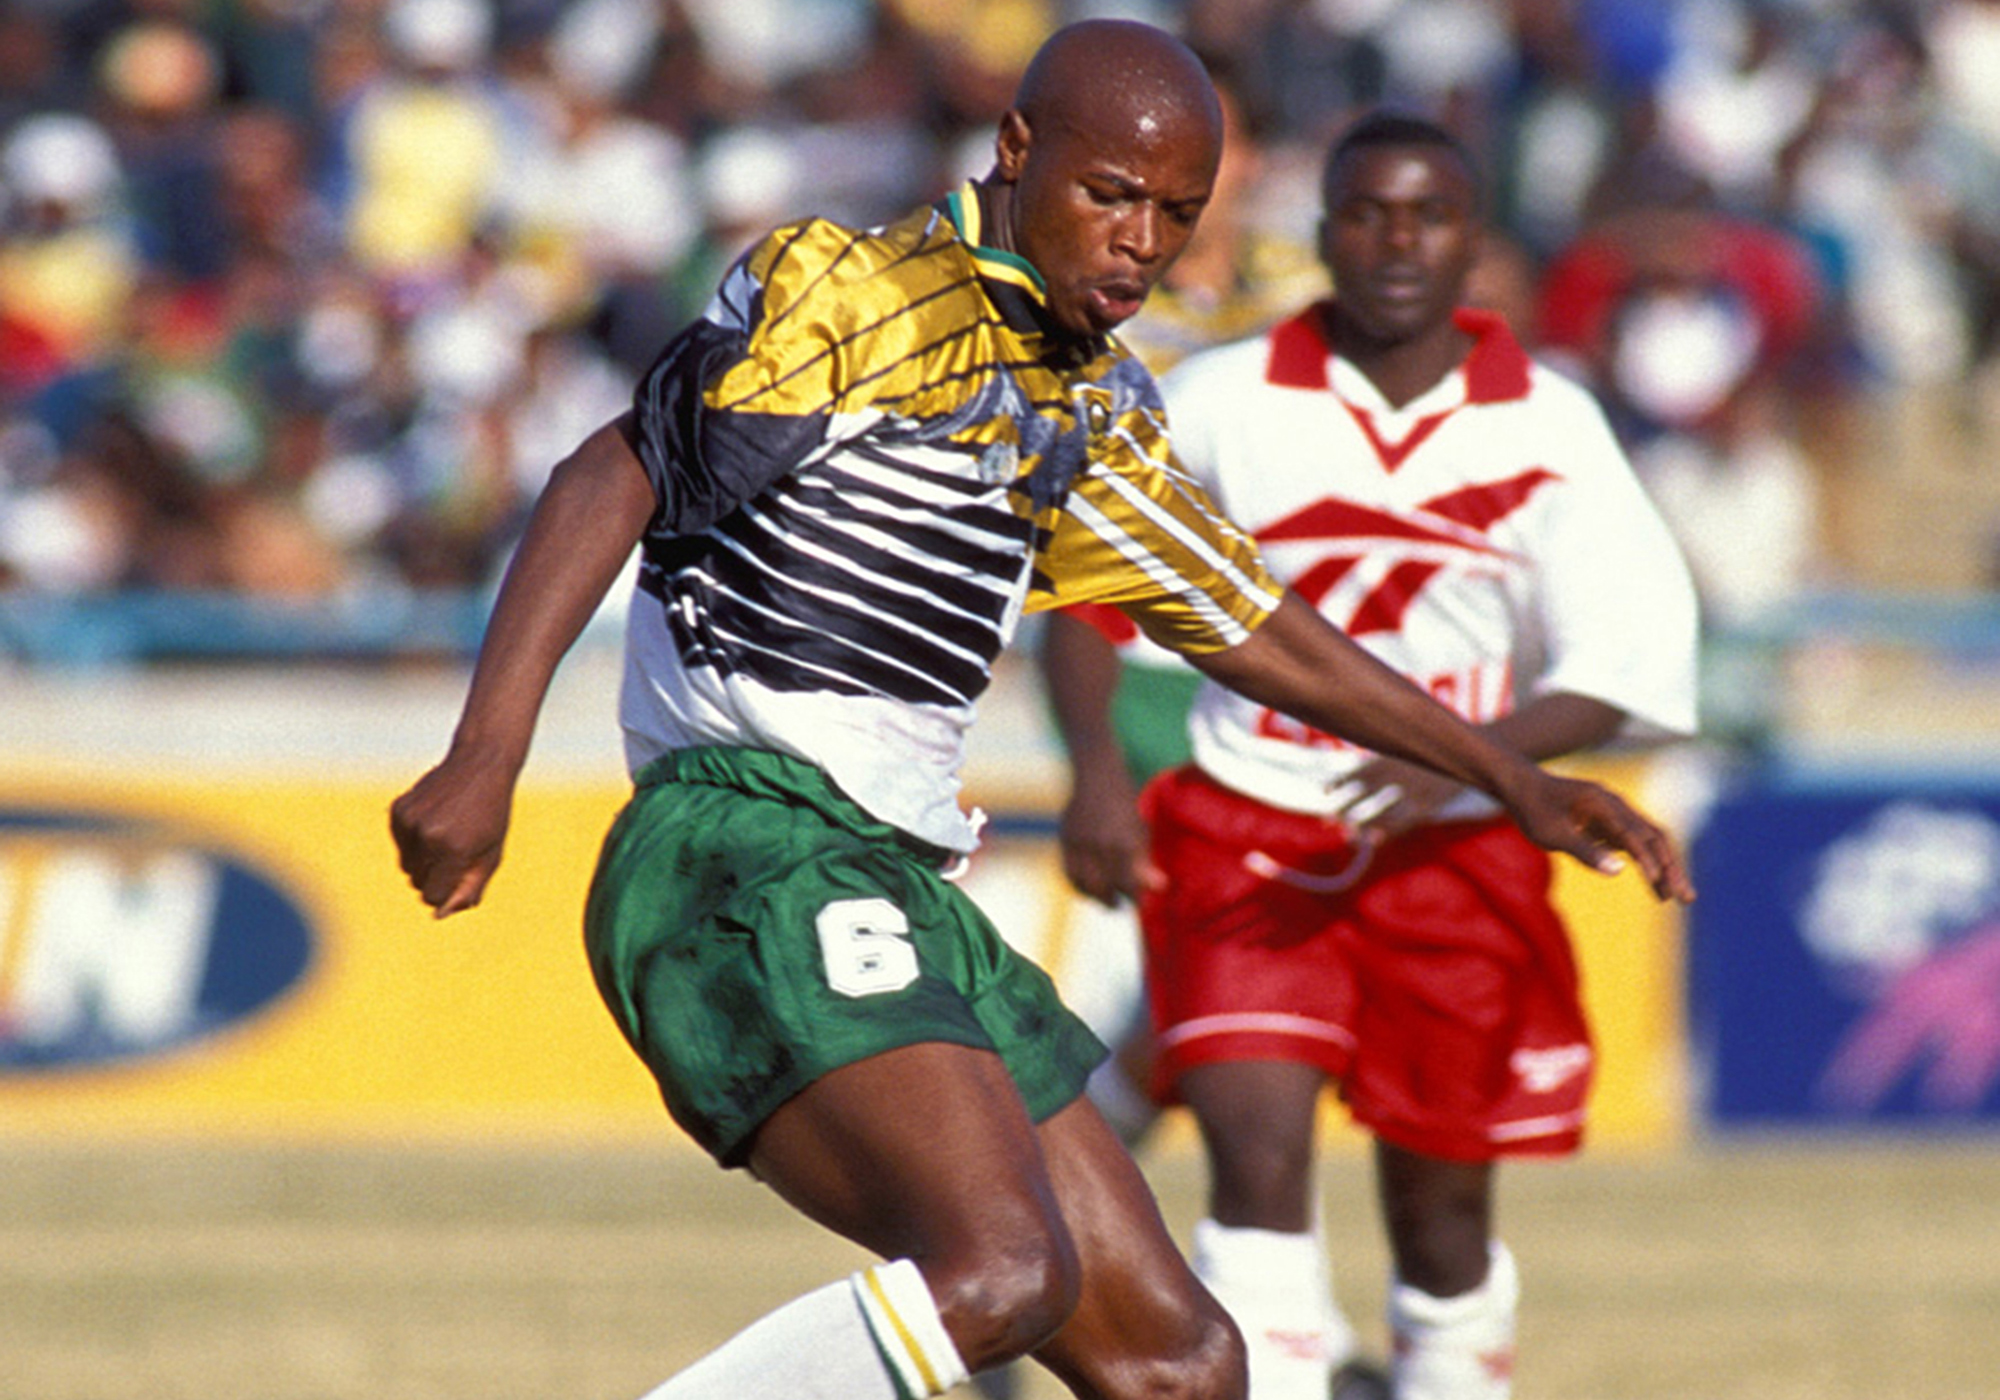 9b7549e3d32d MAMELODI SUNDOWNS' CONDOLENCES ON PASSING OF PHIL MASINGA – Mamelodi ...